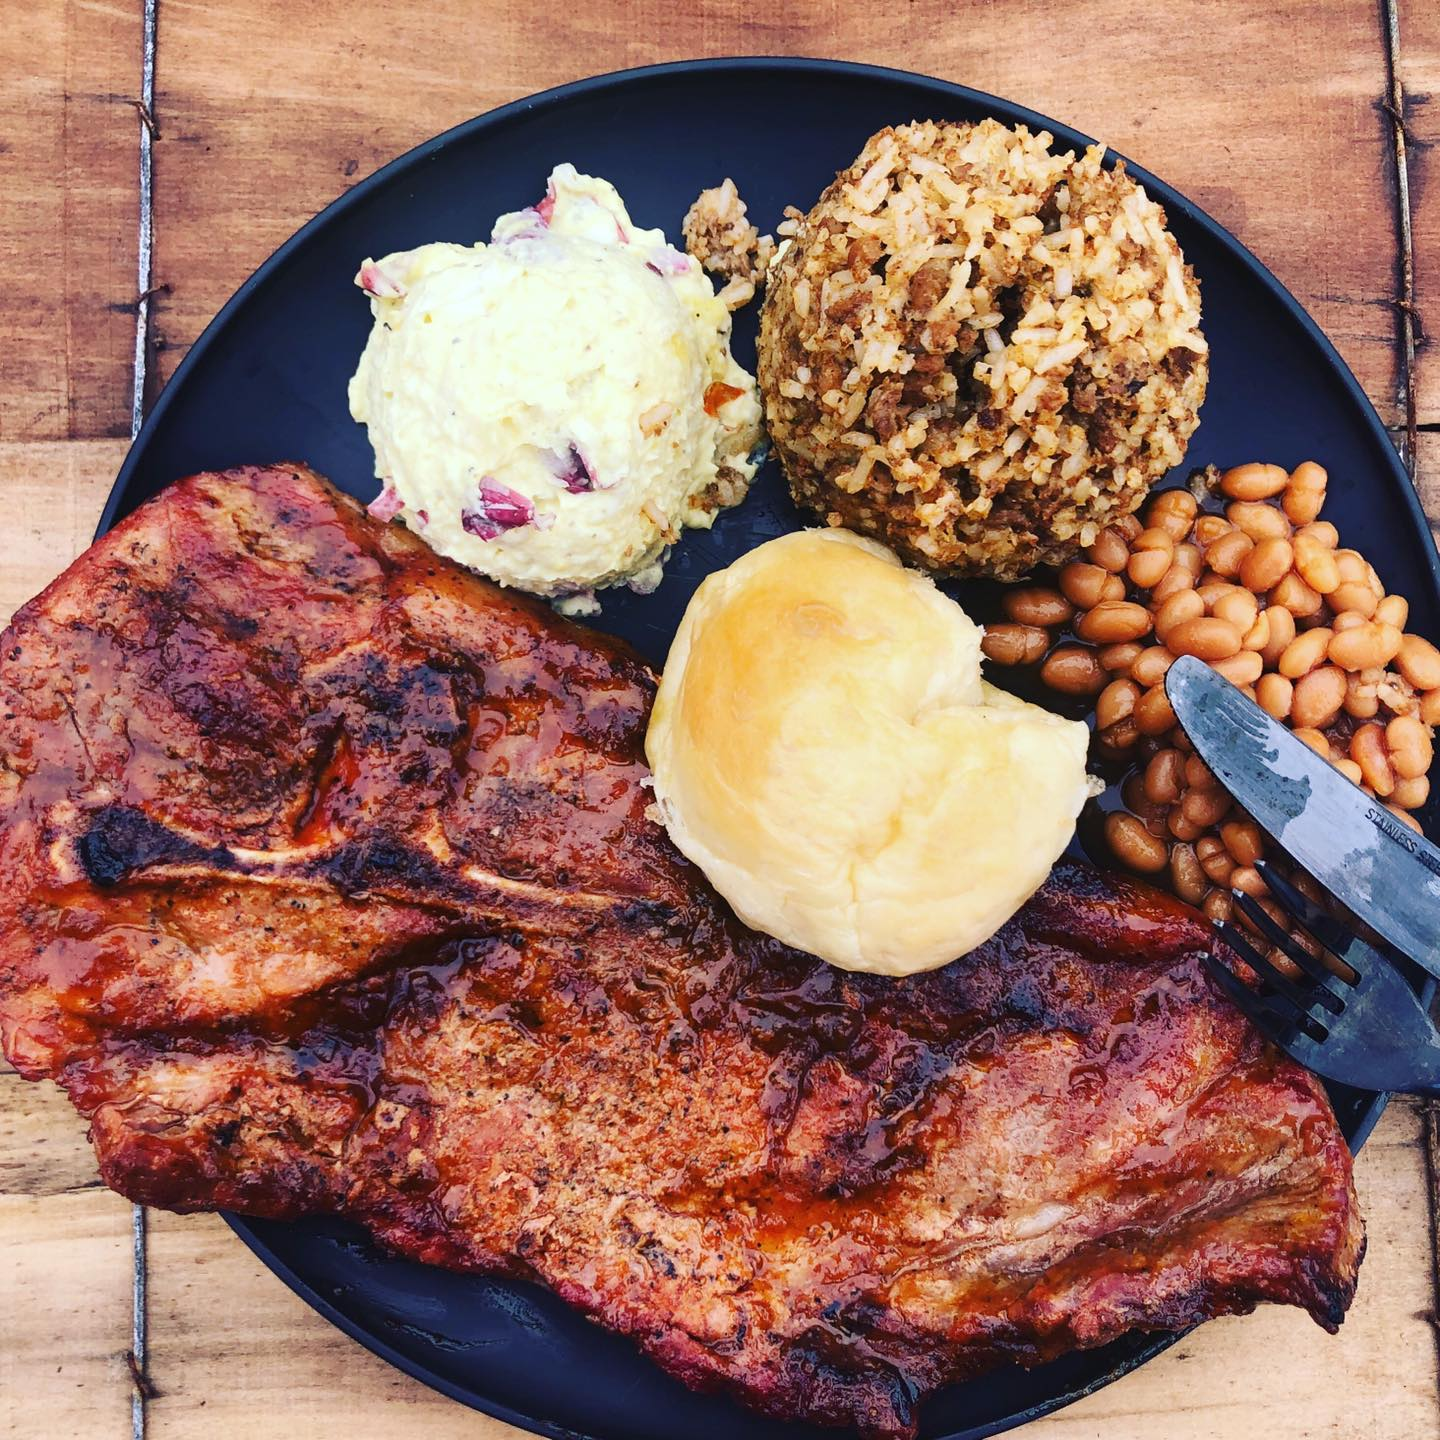 BBQ steak with mashed potatoes, potato salad and beans